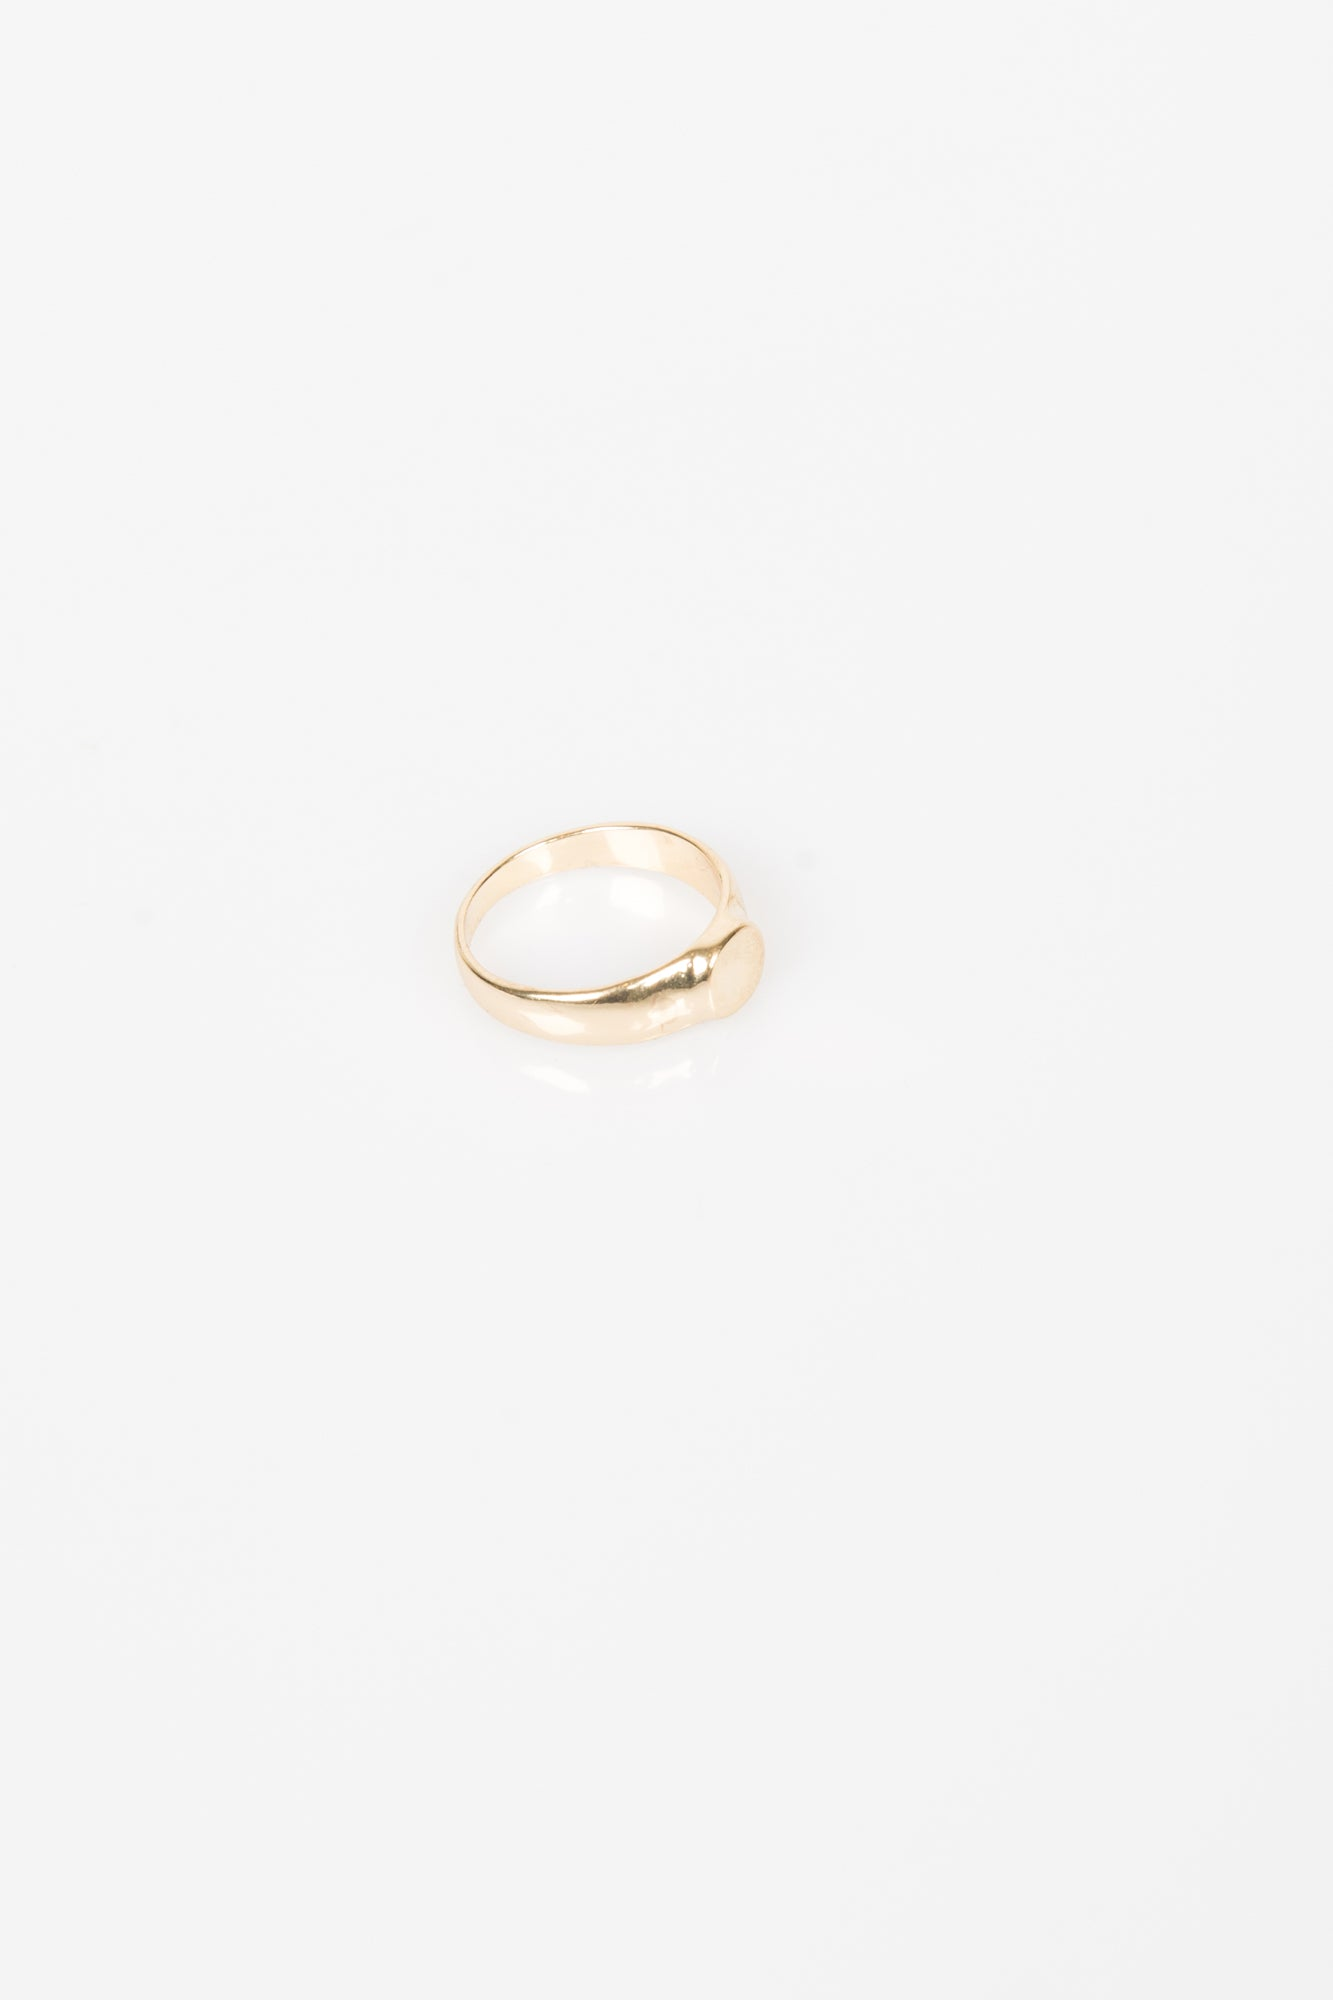 Nth Circle Signet Ring Gold